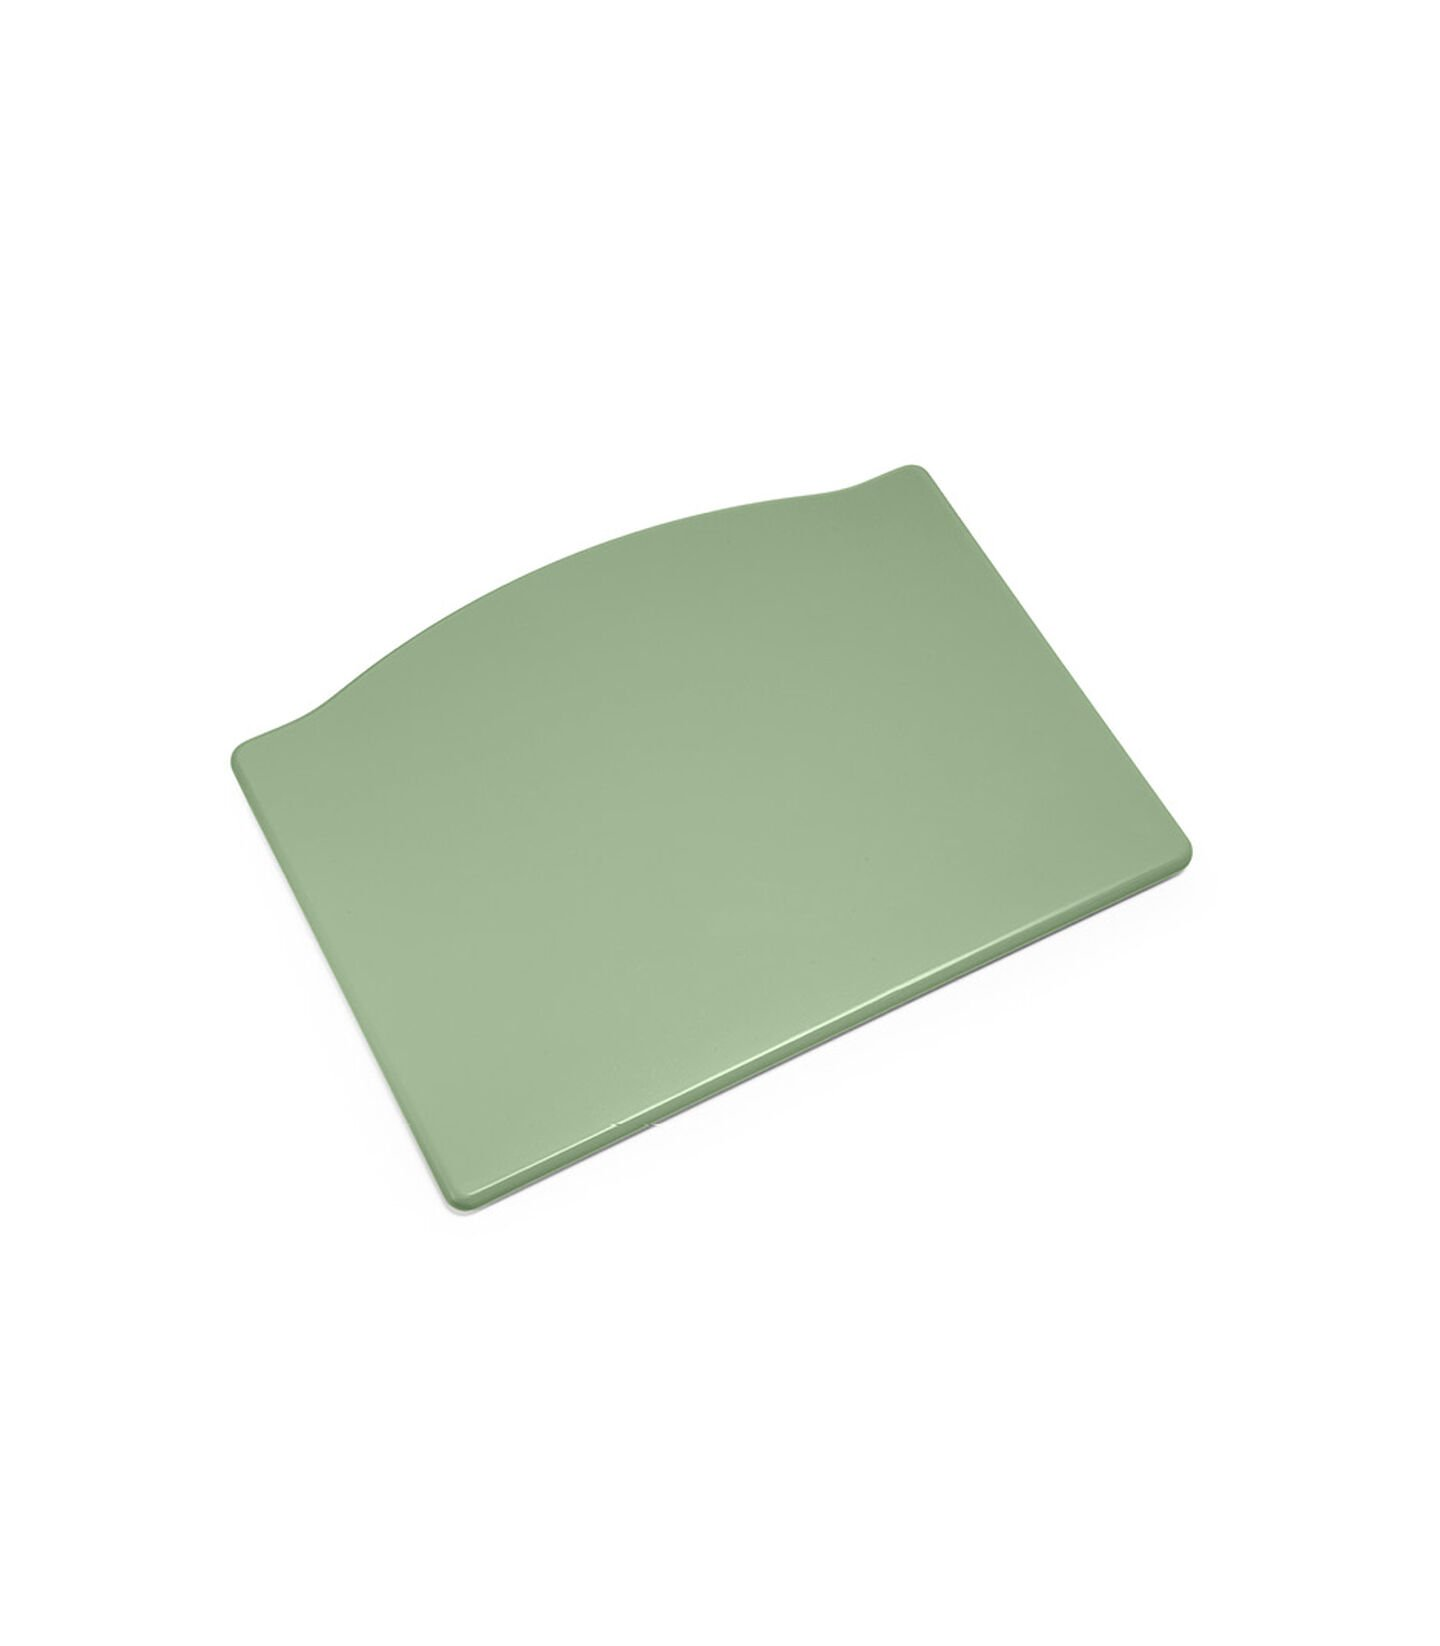 Tripp Trapp Foot Plate Moss Green (Spare part). view 2